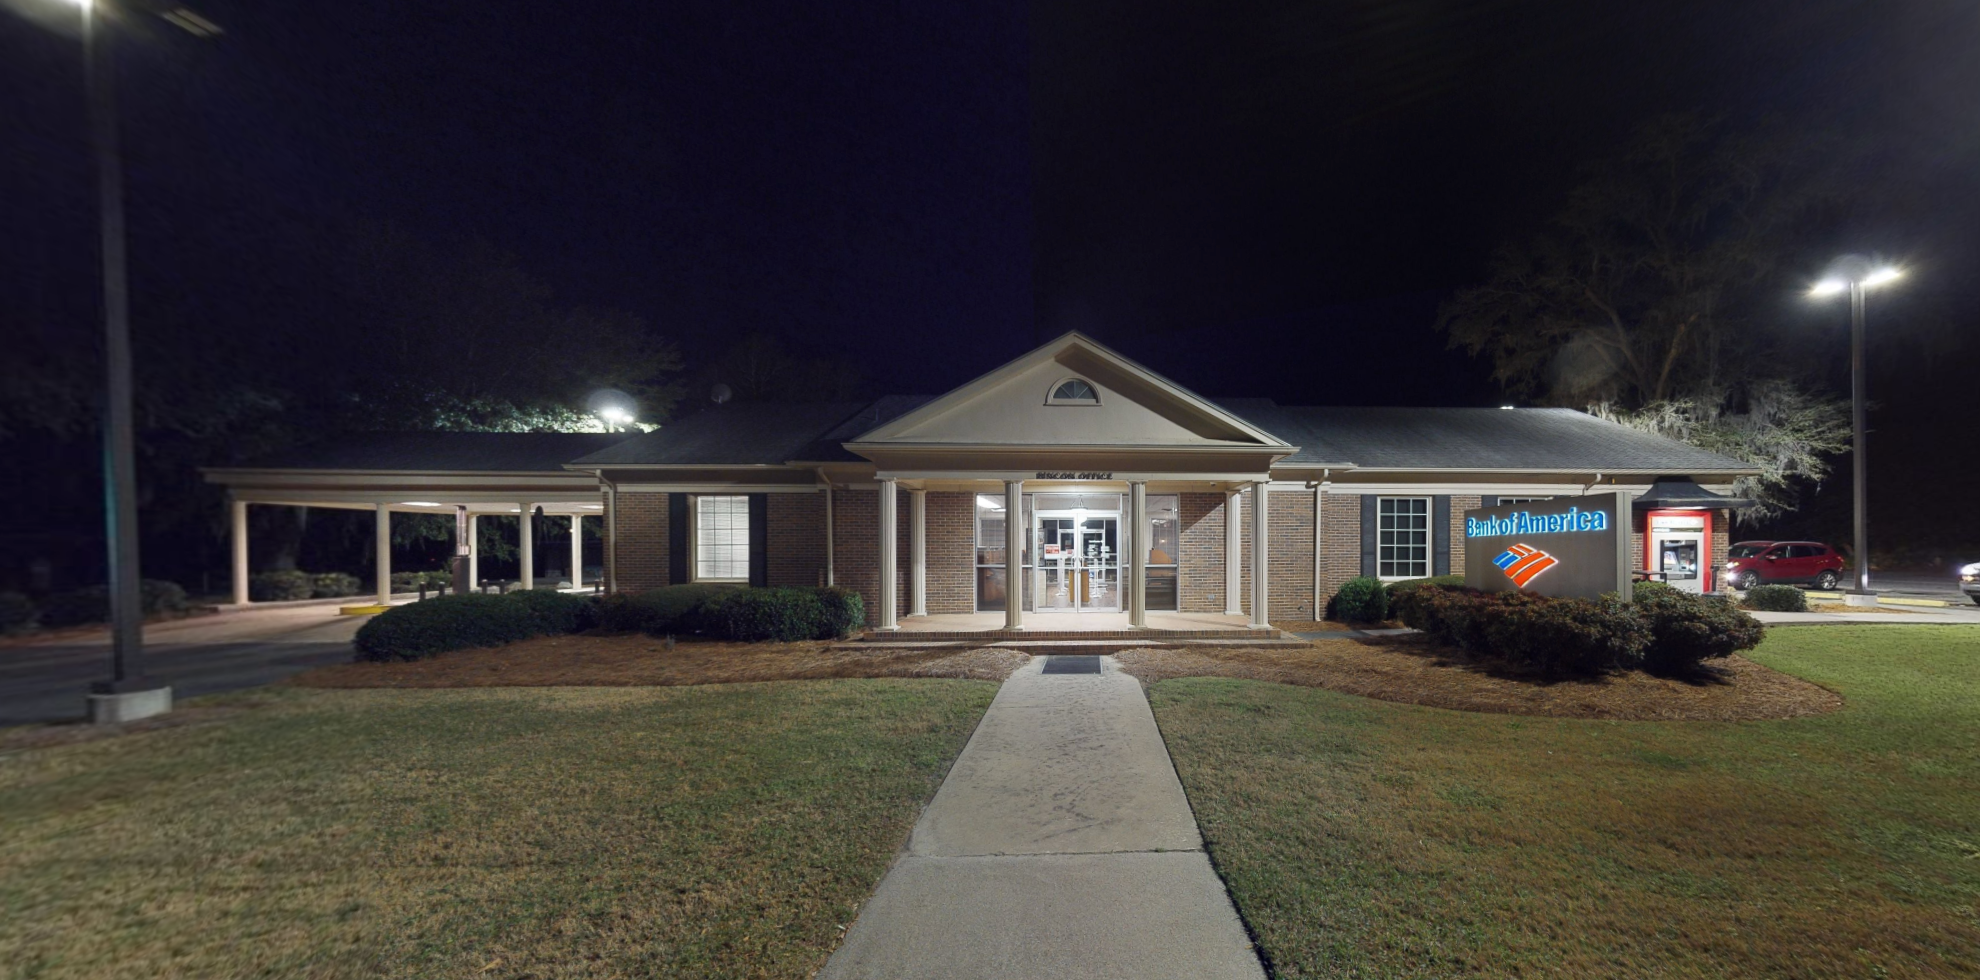 Bank of America financial center with walk-up ATM   119 N Columbia Ave, Rincon, GA 31326